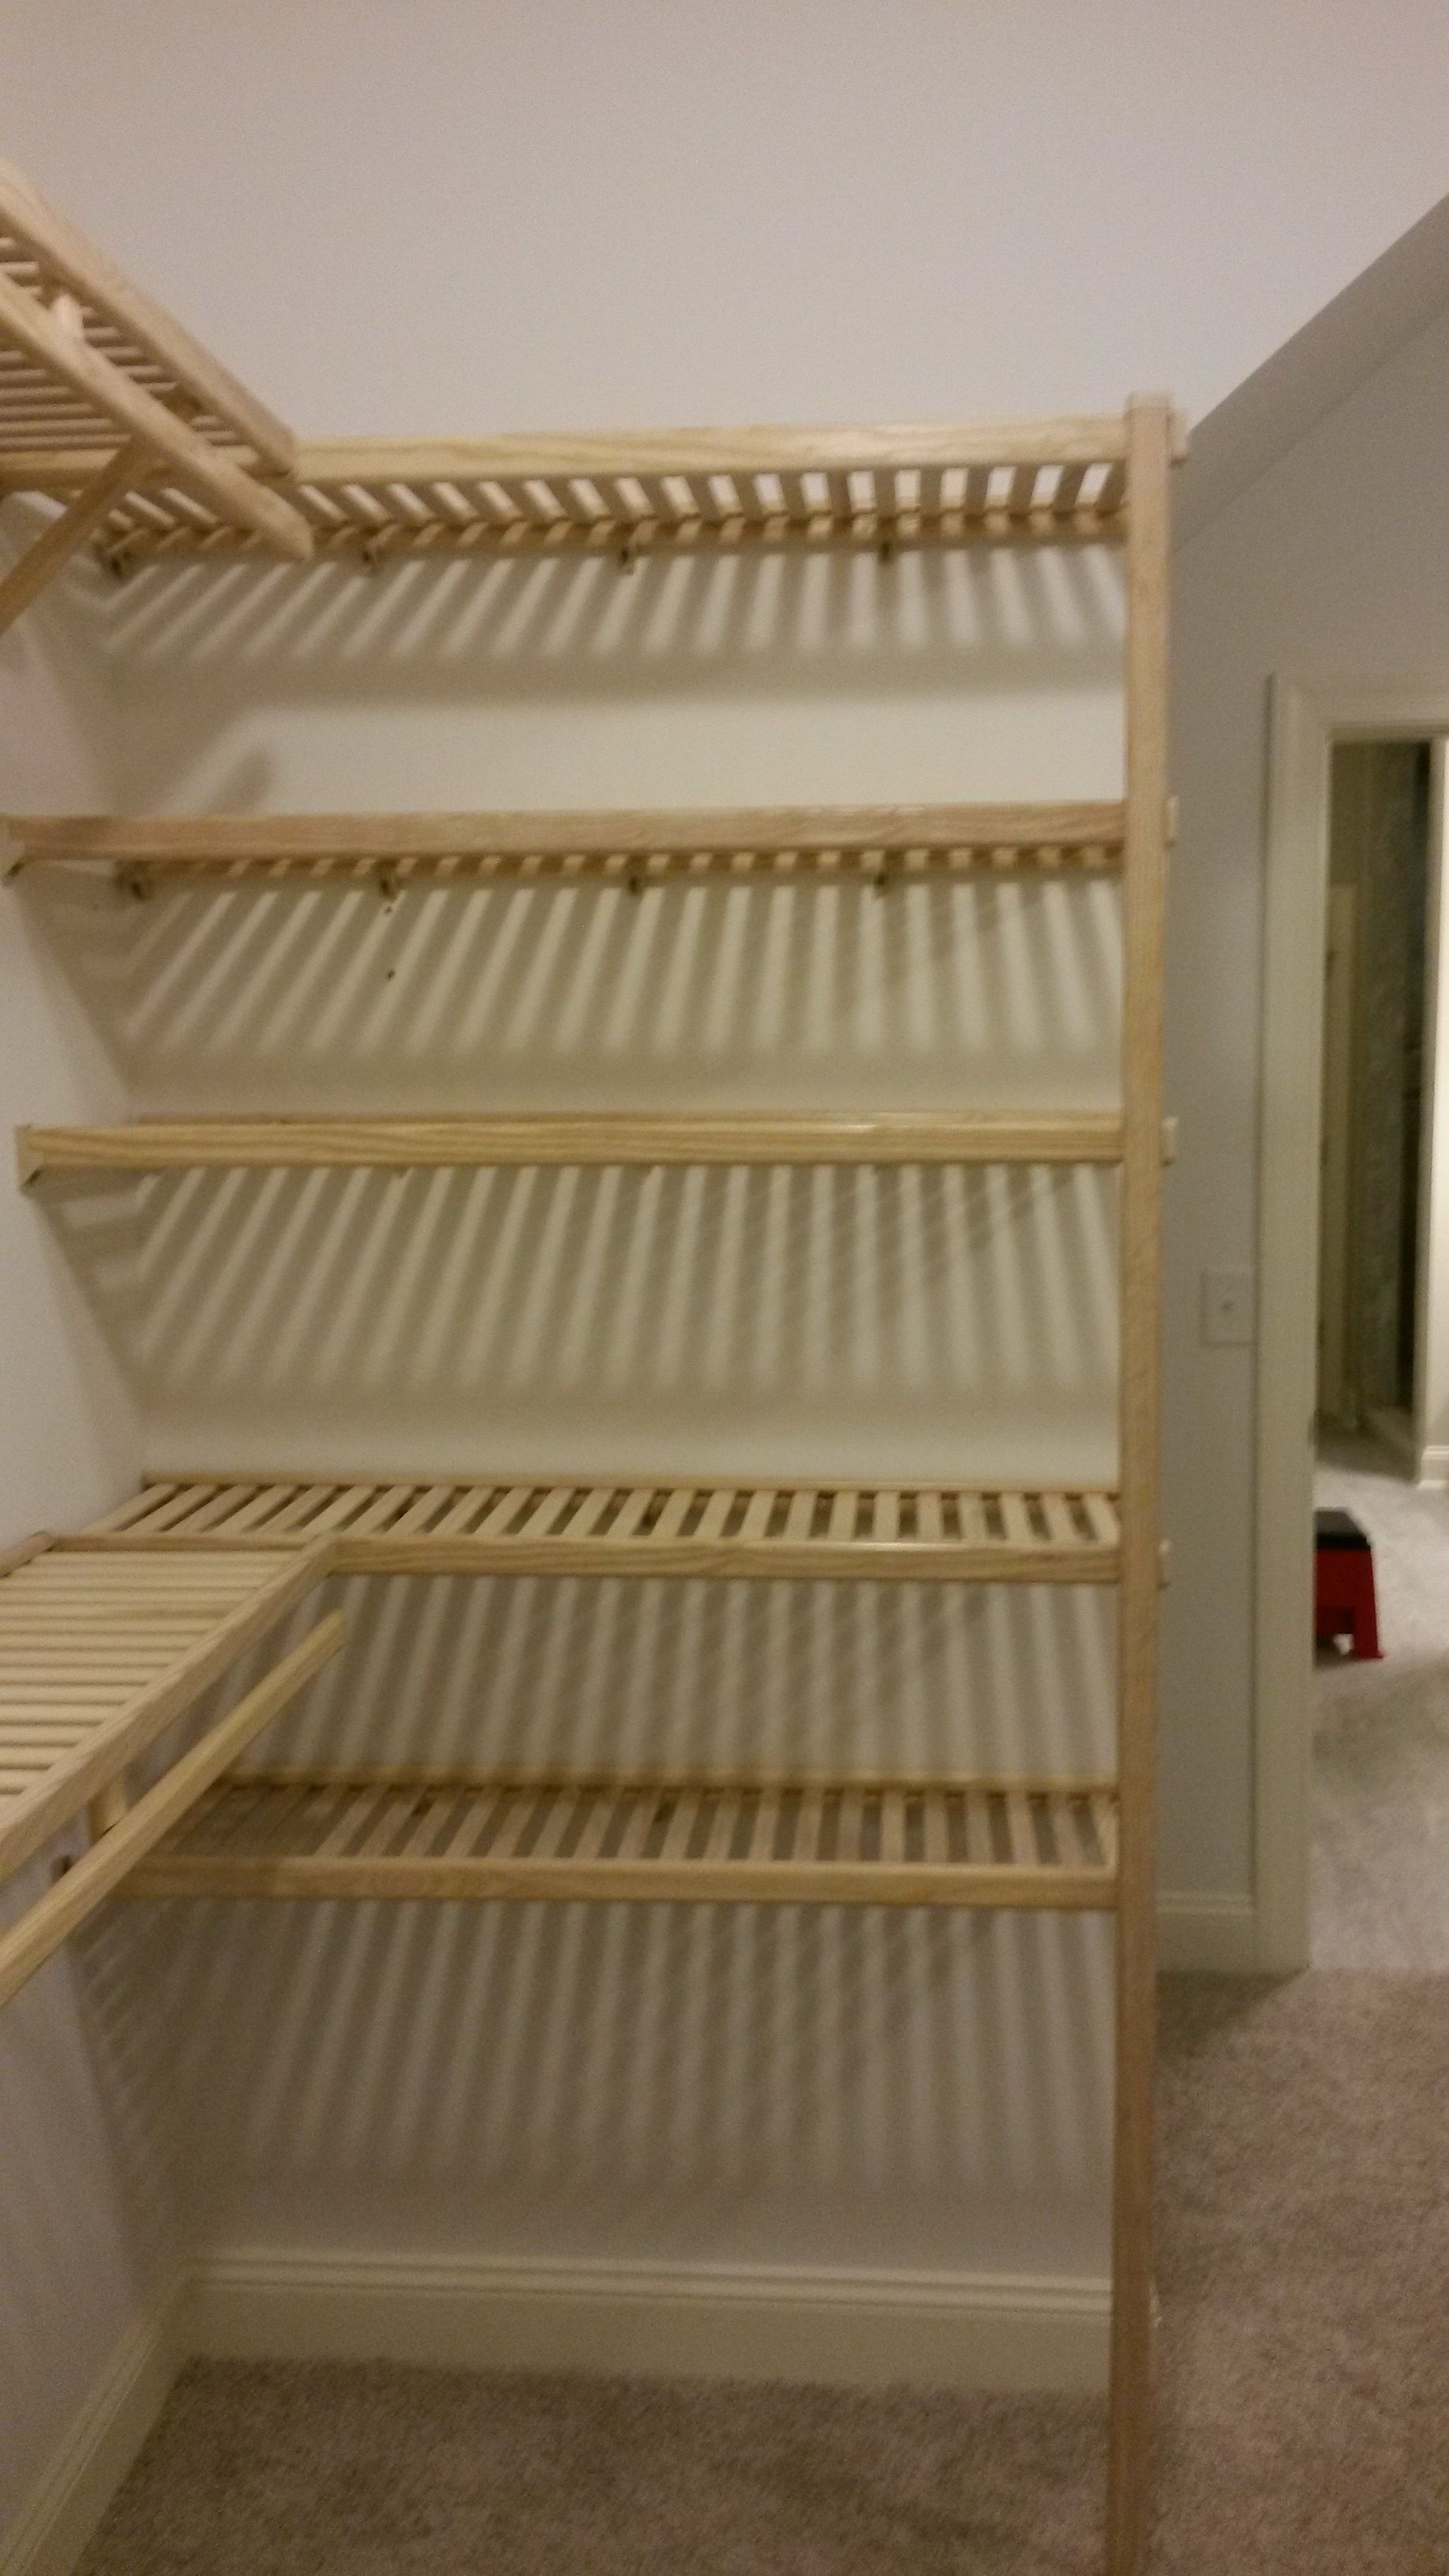 Tired Of The One Wire Rack Shelving System In Your Walkin Closet Our Ventilated Wood Is Awesome And Versatile